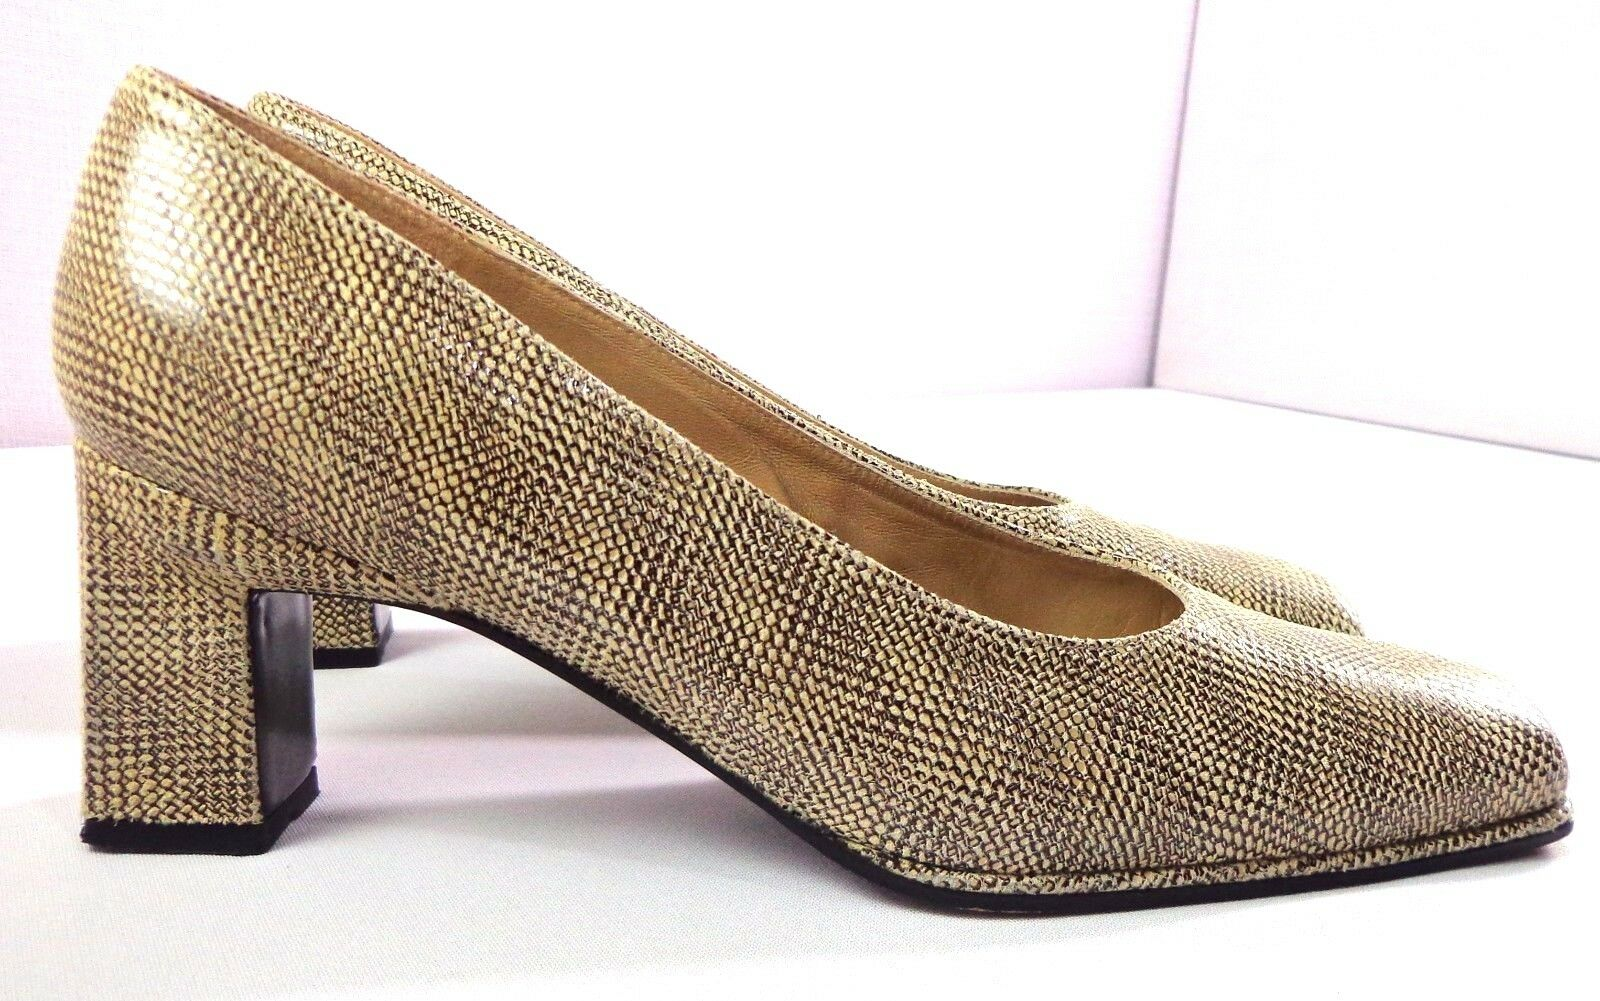 Stuart Weitzman Pumps Womens Square Toe Tan Brown Print Slip On shoes Size 9 B